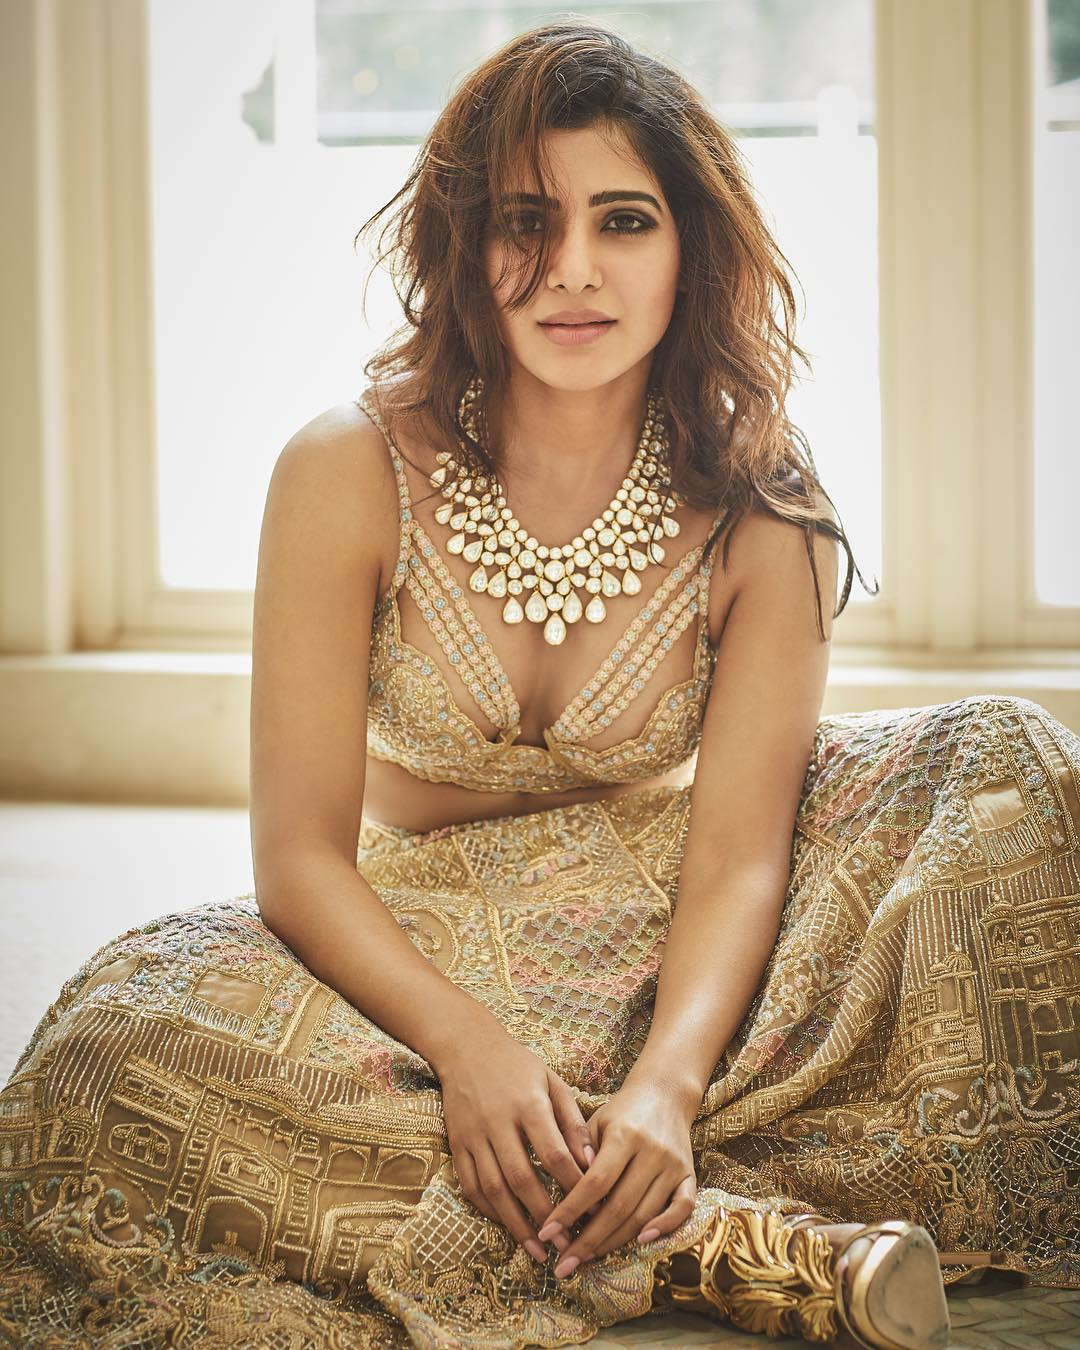 Samantha Wedding Dress Pics7